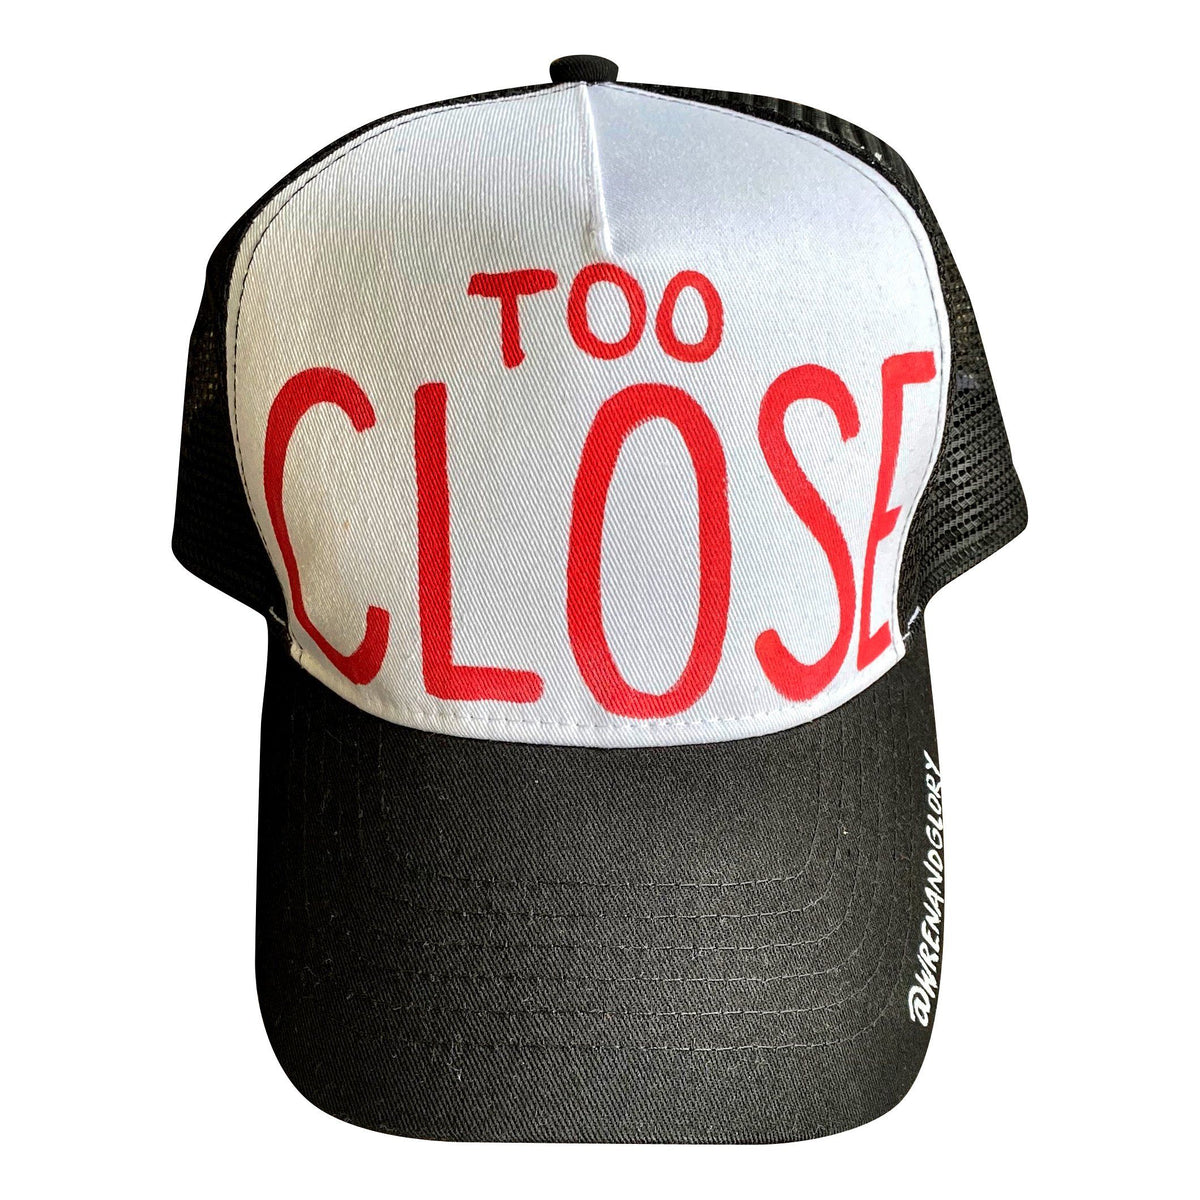 'TOO CLOSE' PAINTED HAT